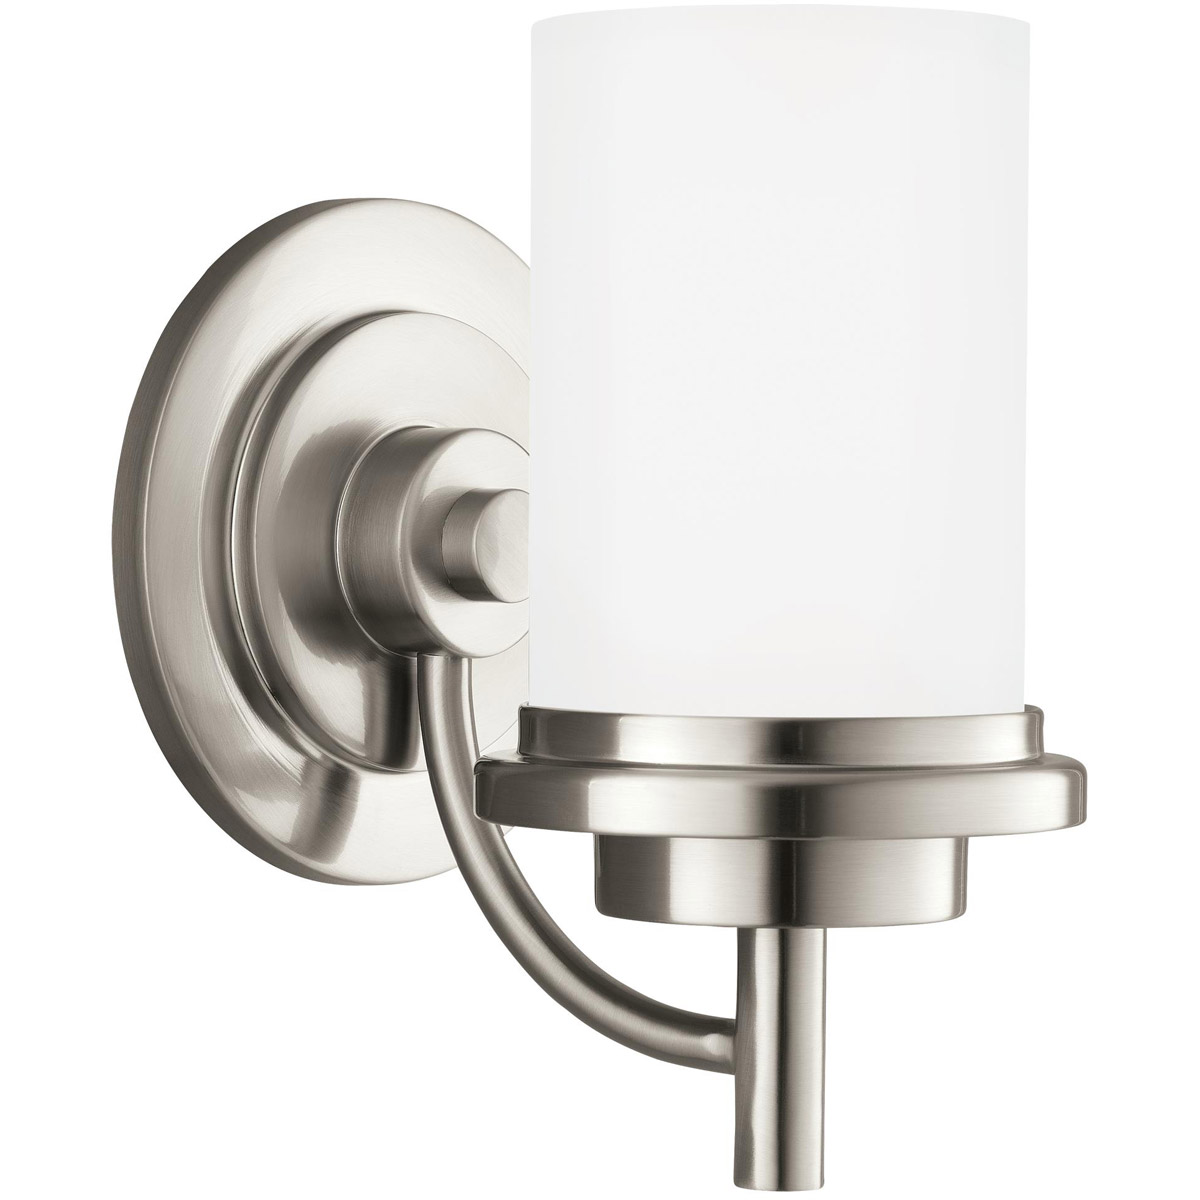 Sea Gull 44660-962 Winnetka 1 Light 6 inch Brushed Nickel Bath Vanity Wall Light in Satin Etched Glass, Standard photo